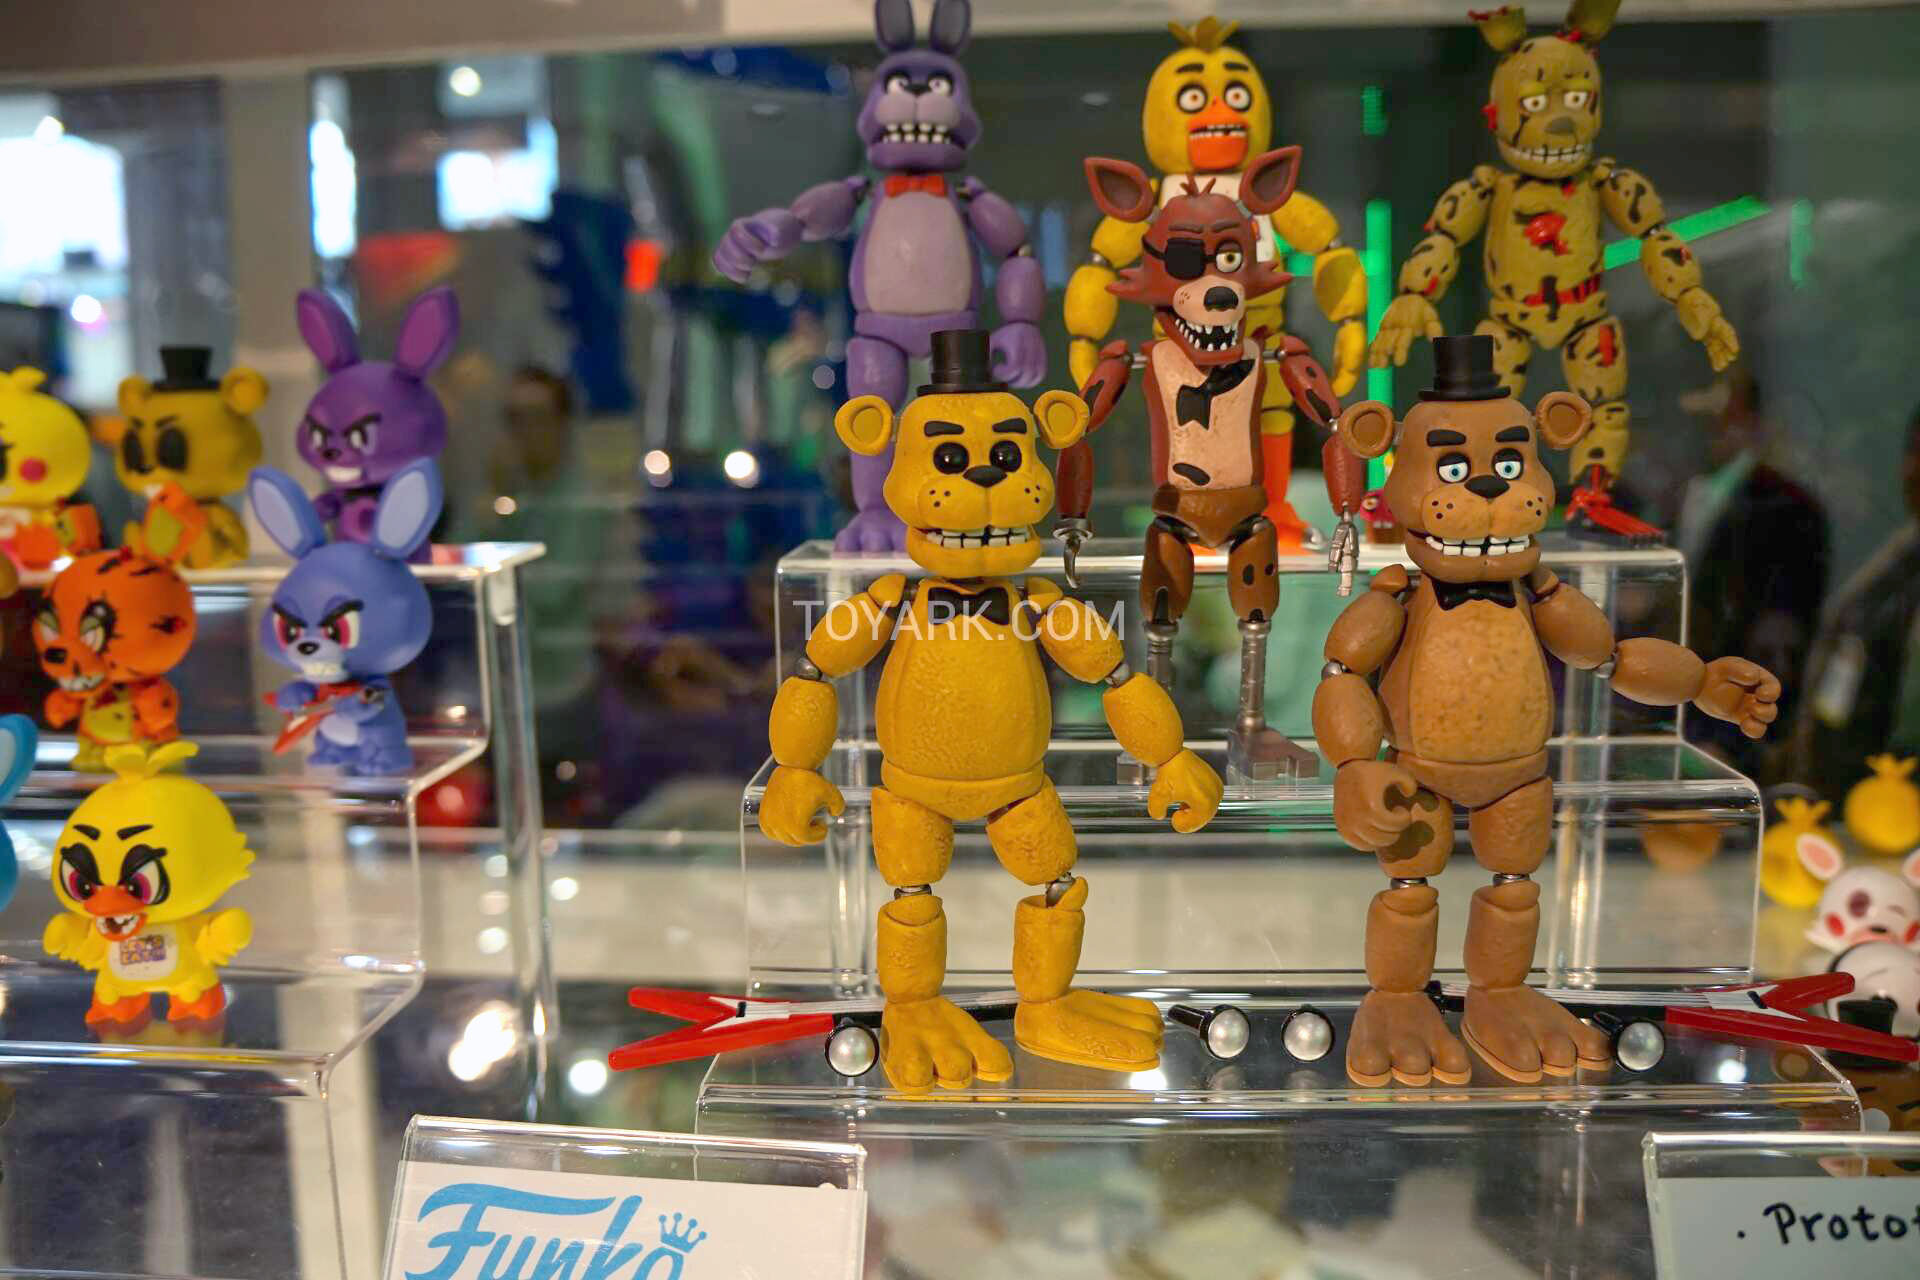 5 Nights At Freddys Toys For Sale - Tf 2016 funko five nights 003